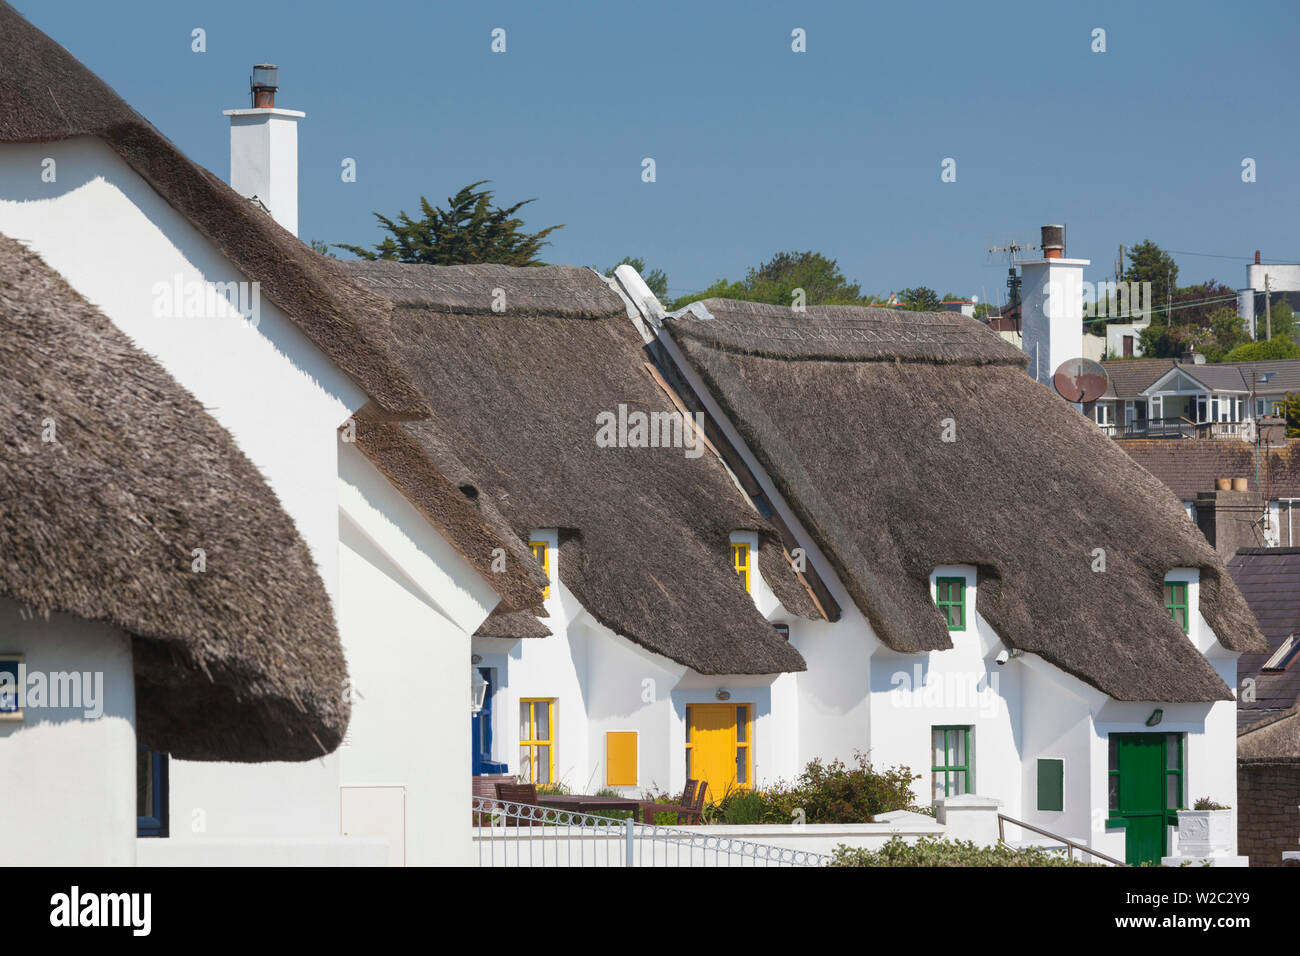 Ireland, County Waterford, Dunmore East, traditional cottage detail Stock Photo